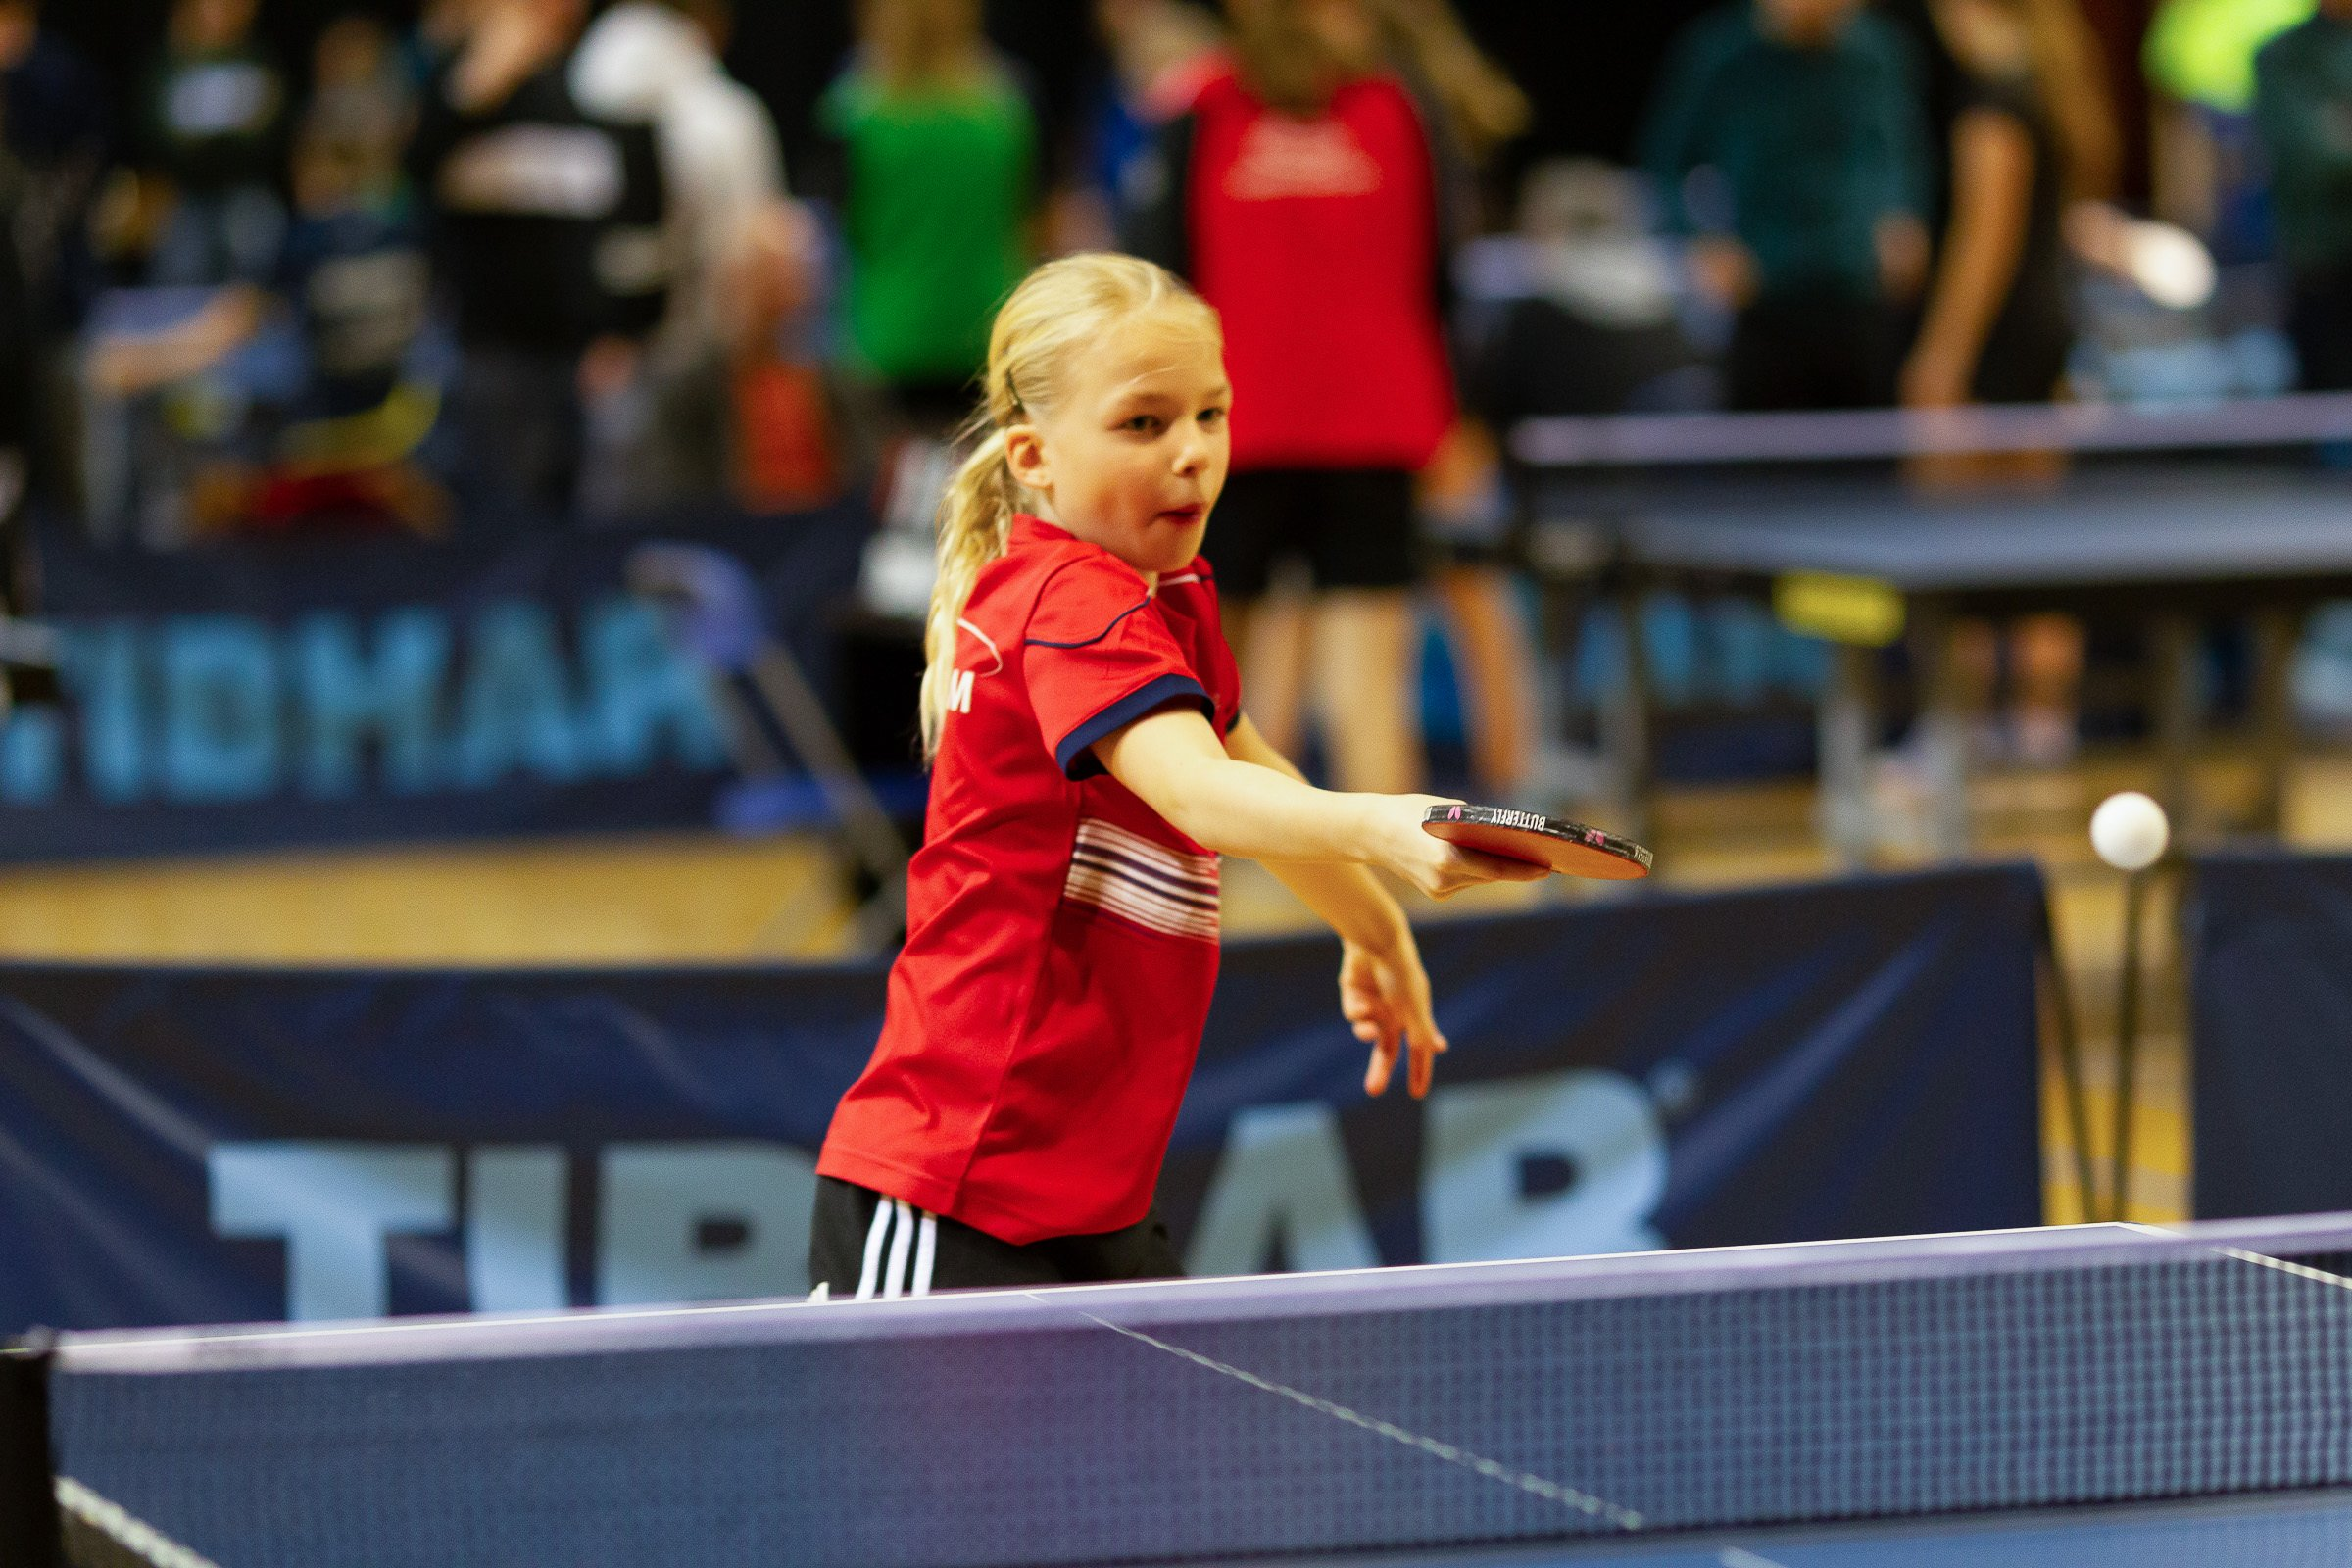 Je bekijkt nu Table tennis at TTV Amsterdam: Both challenging and fun